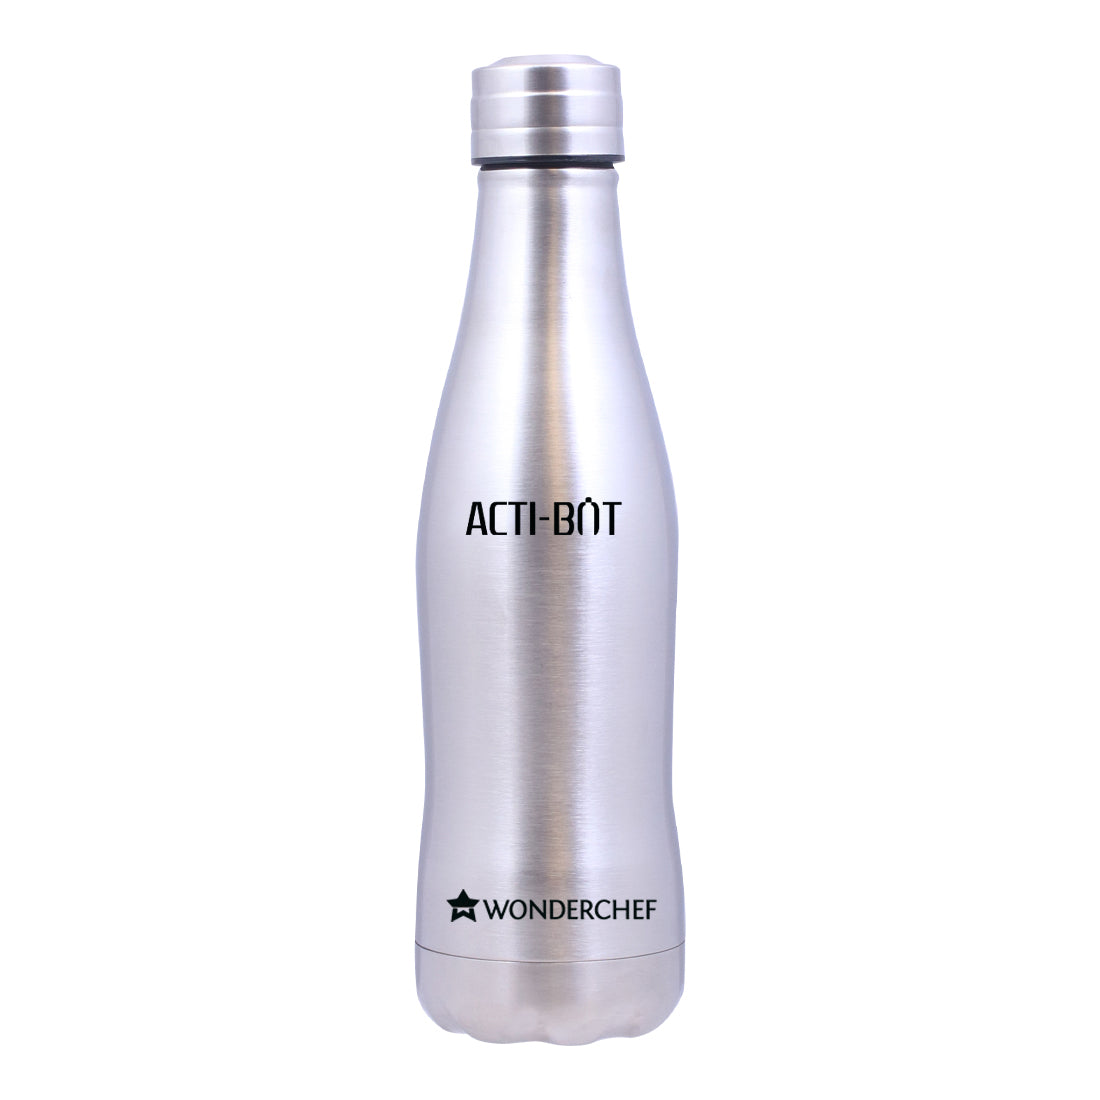 Wonderchef Acti Bot Single Wall Bottle Stainless Steel, 650ml